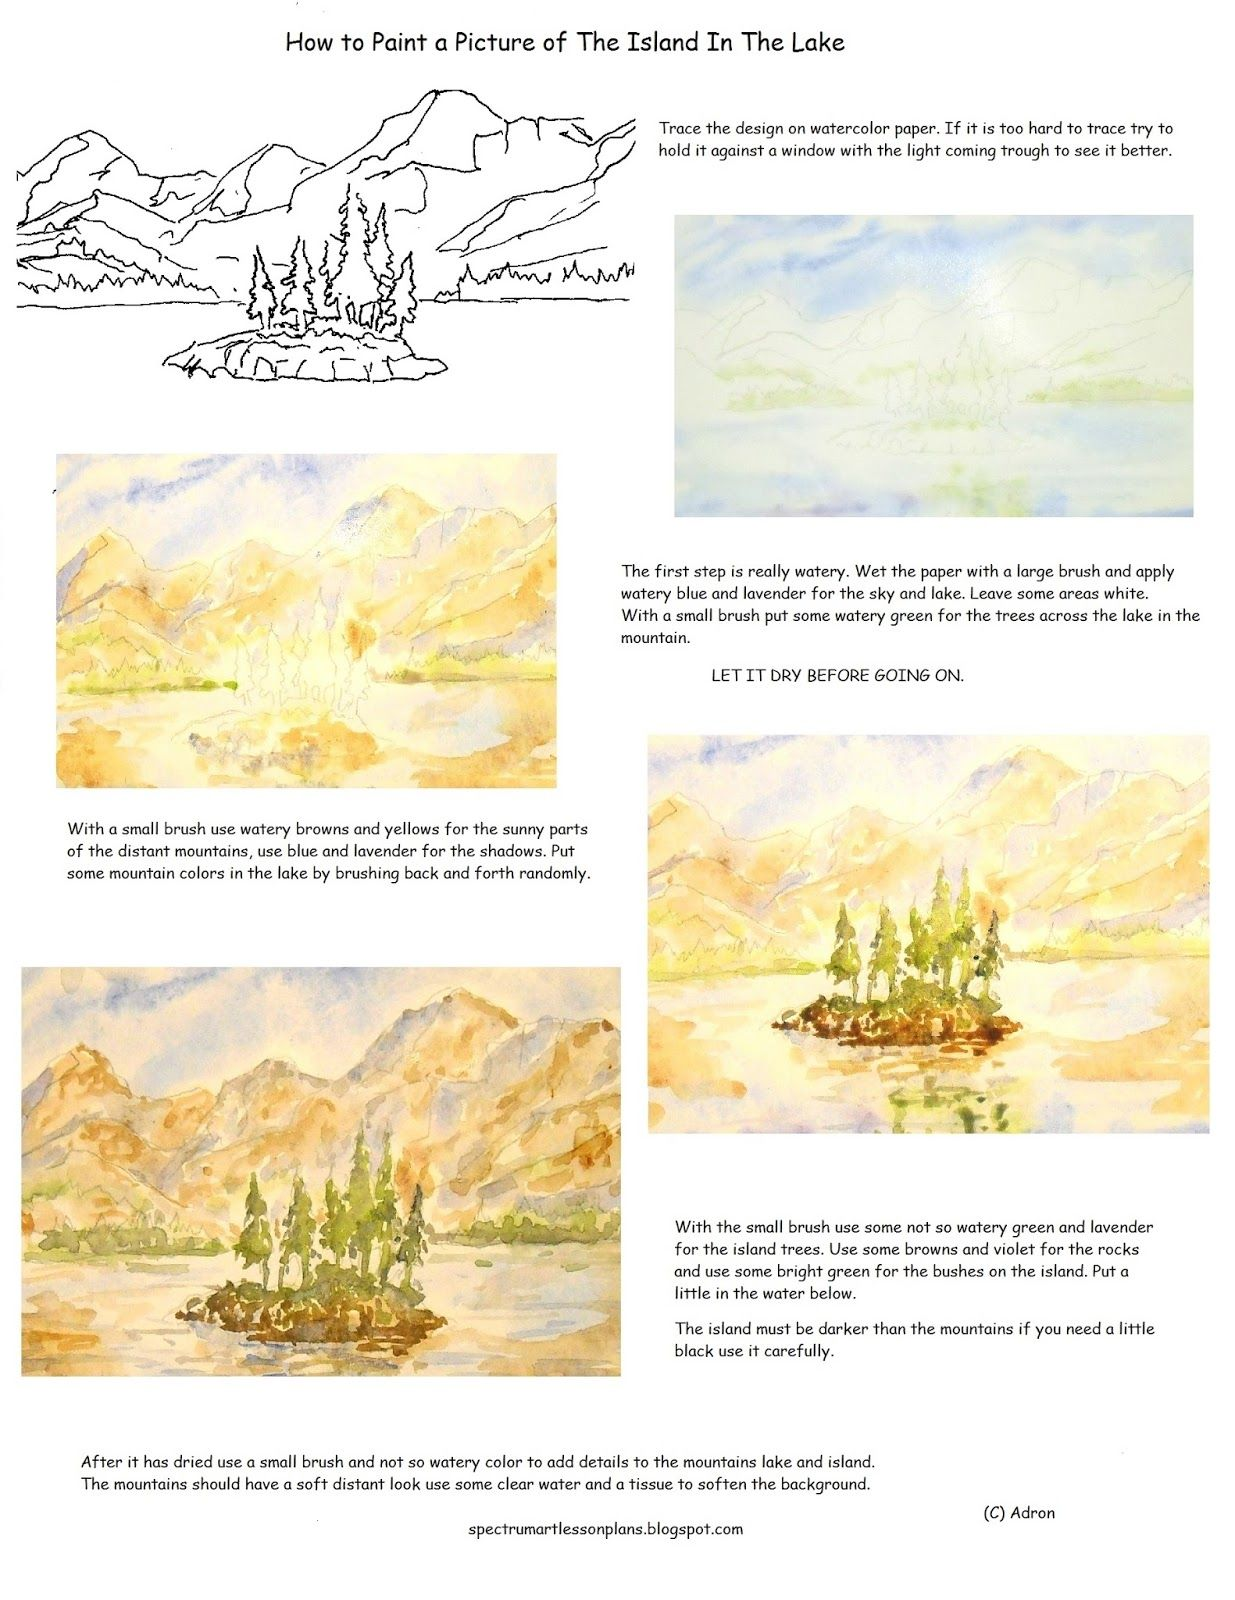 A Short Art Lesson With A Printable Worksheet To Teach How To Paint Mountain Lake With An Island